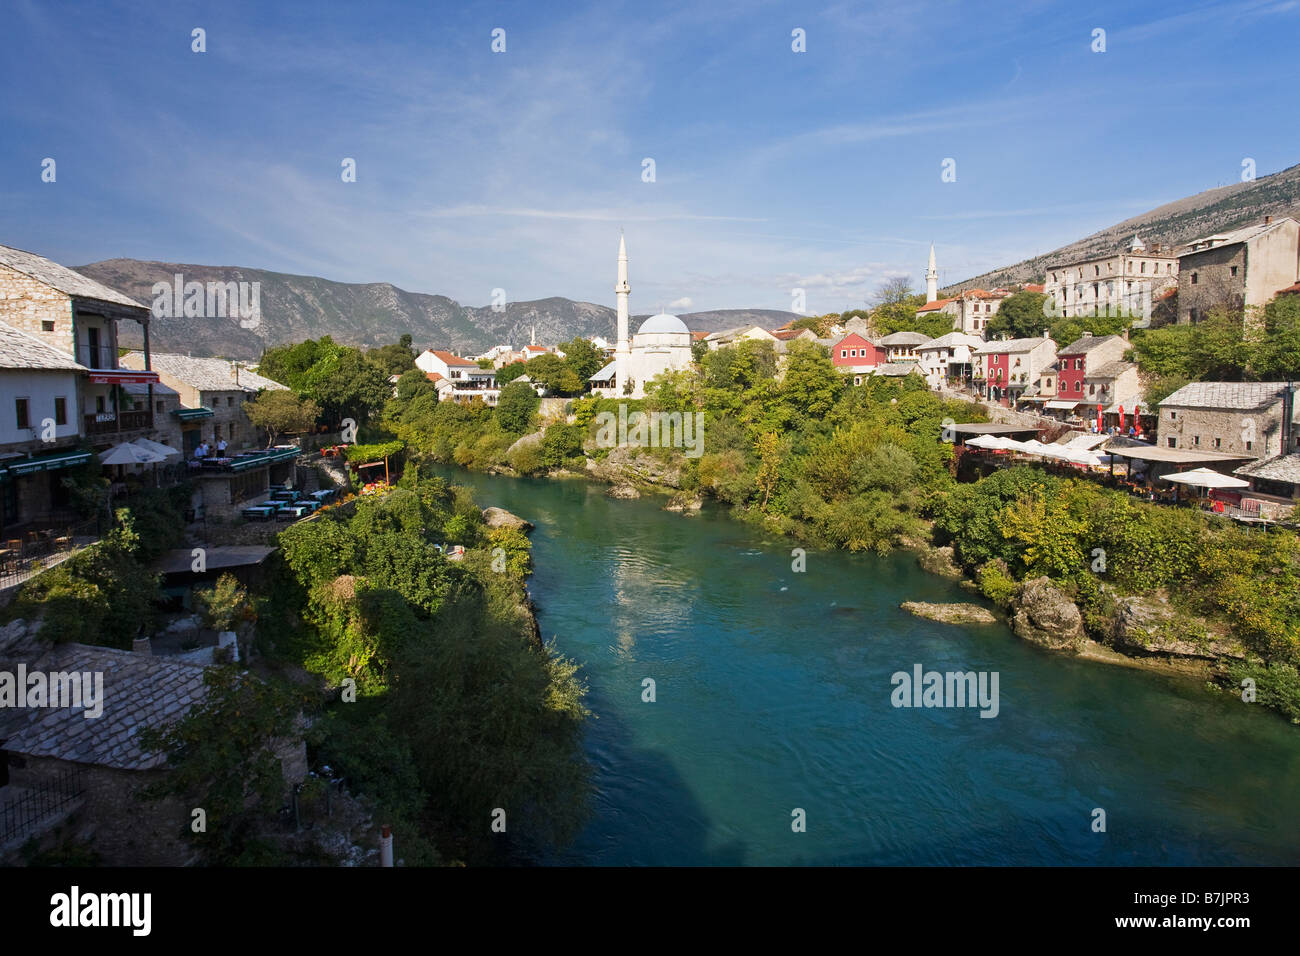 Historic Old Town of Mostar and Neretva River Unesco World Heritage Site in Bosnia Herzegovina Europe - Stock Image